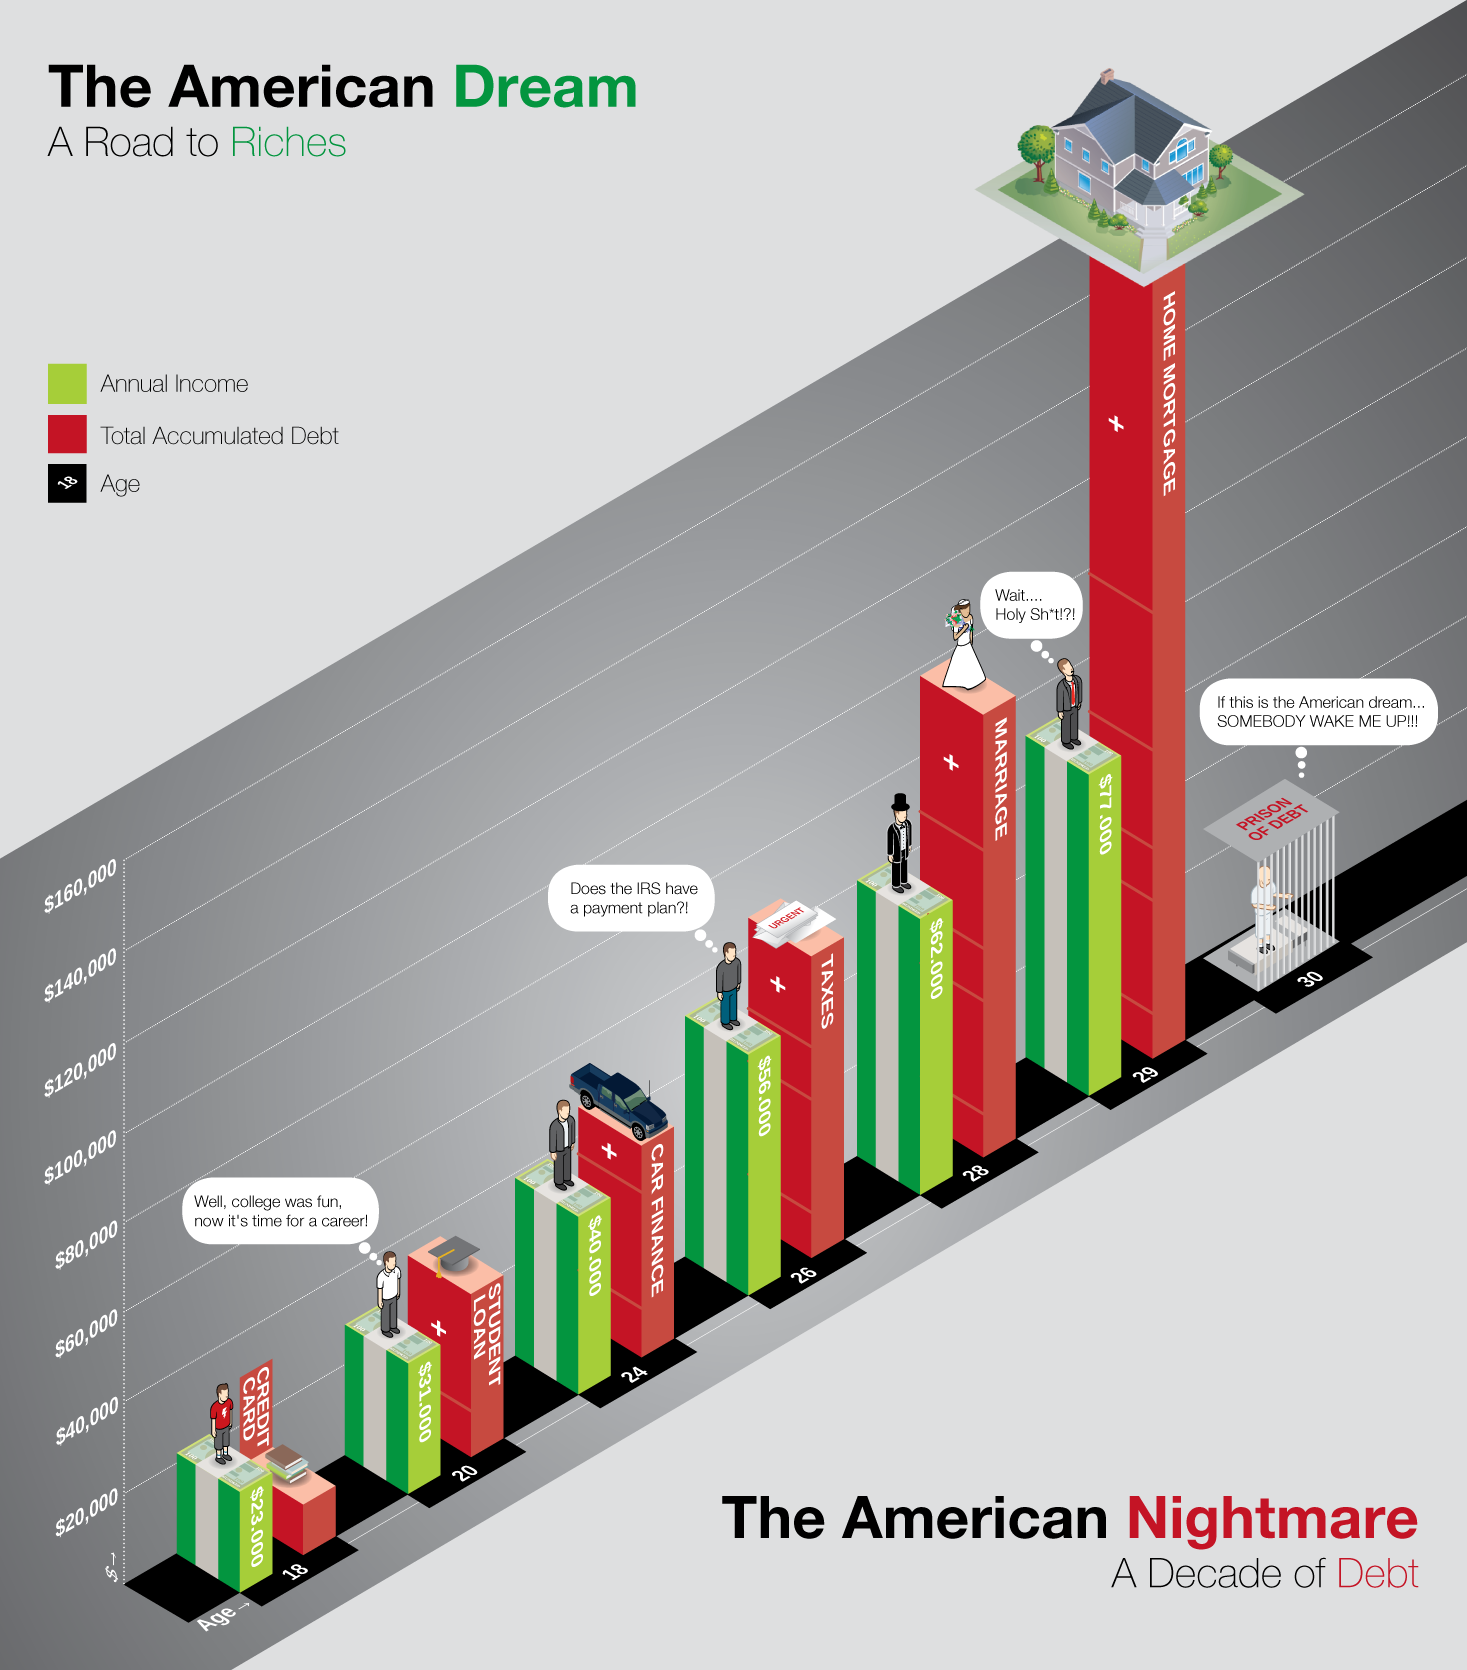 The American Riches Dream and Nightmare